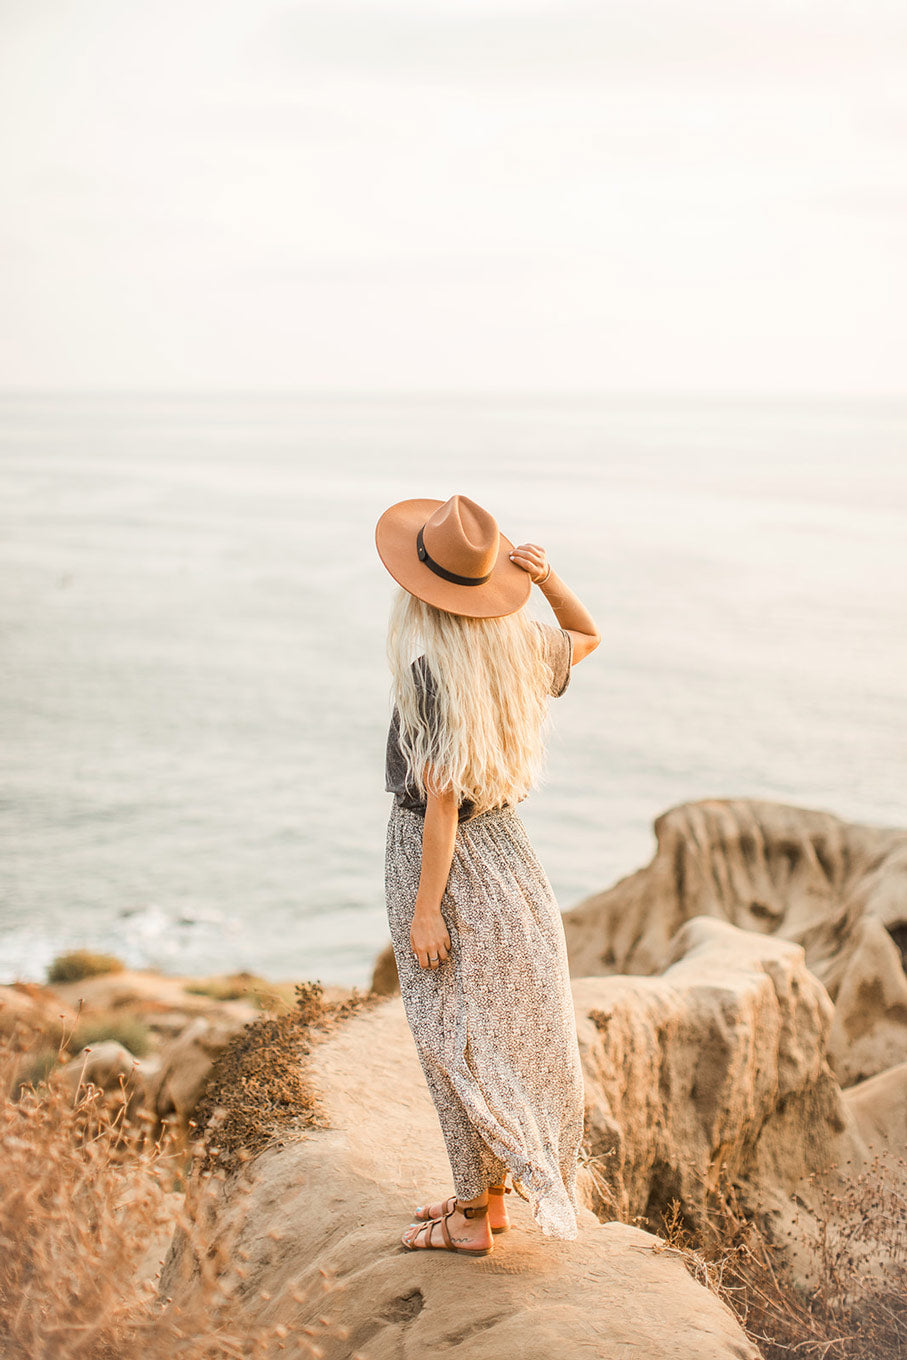 woman with back to camera standing on cliffs overlooking ocean, holding her tan hat